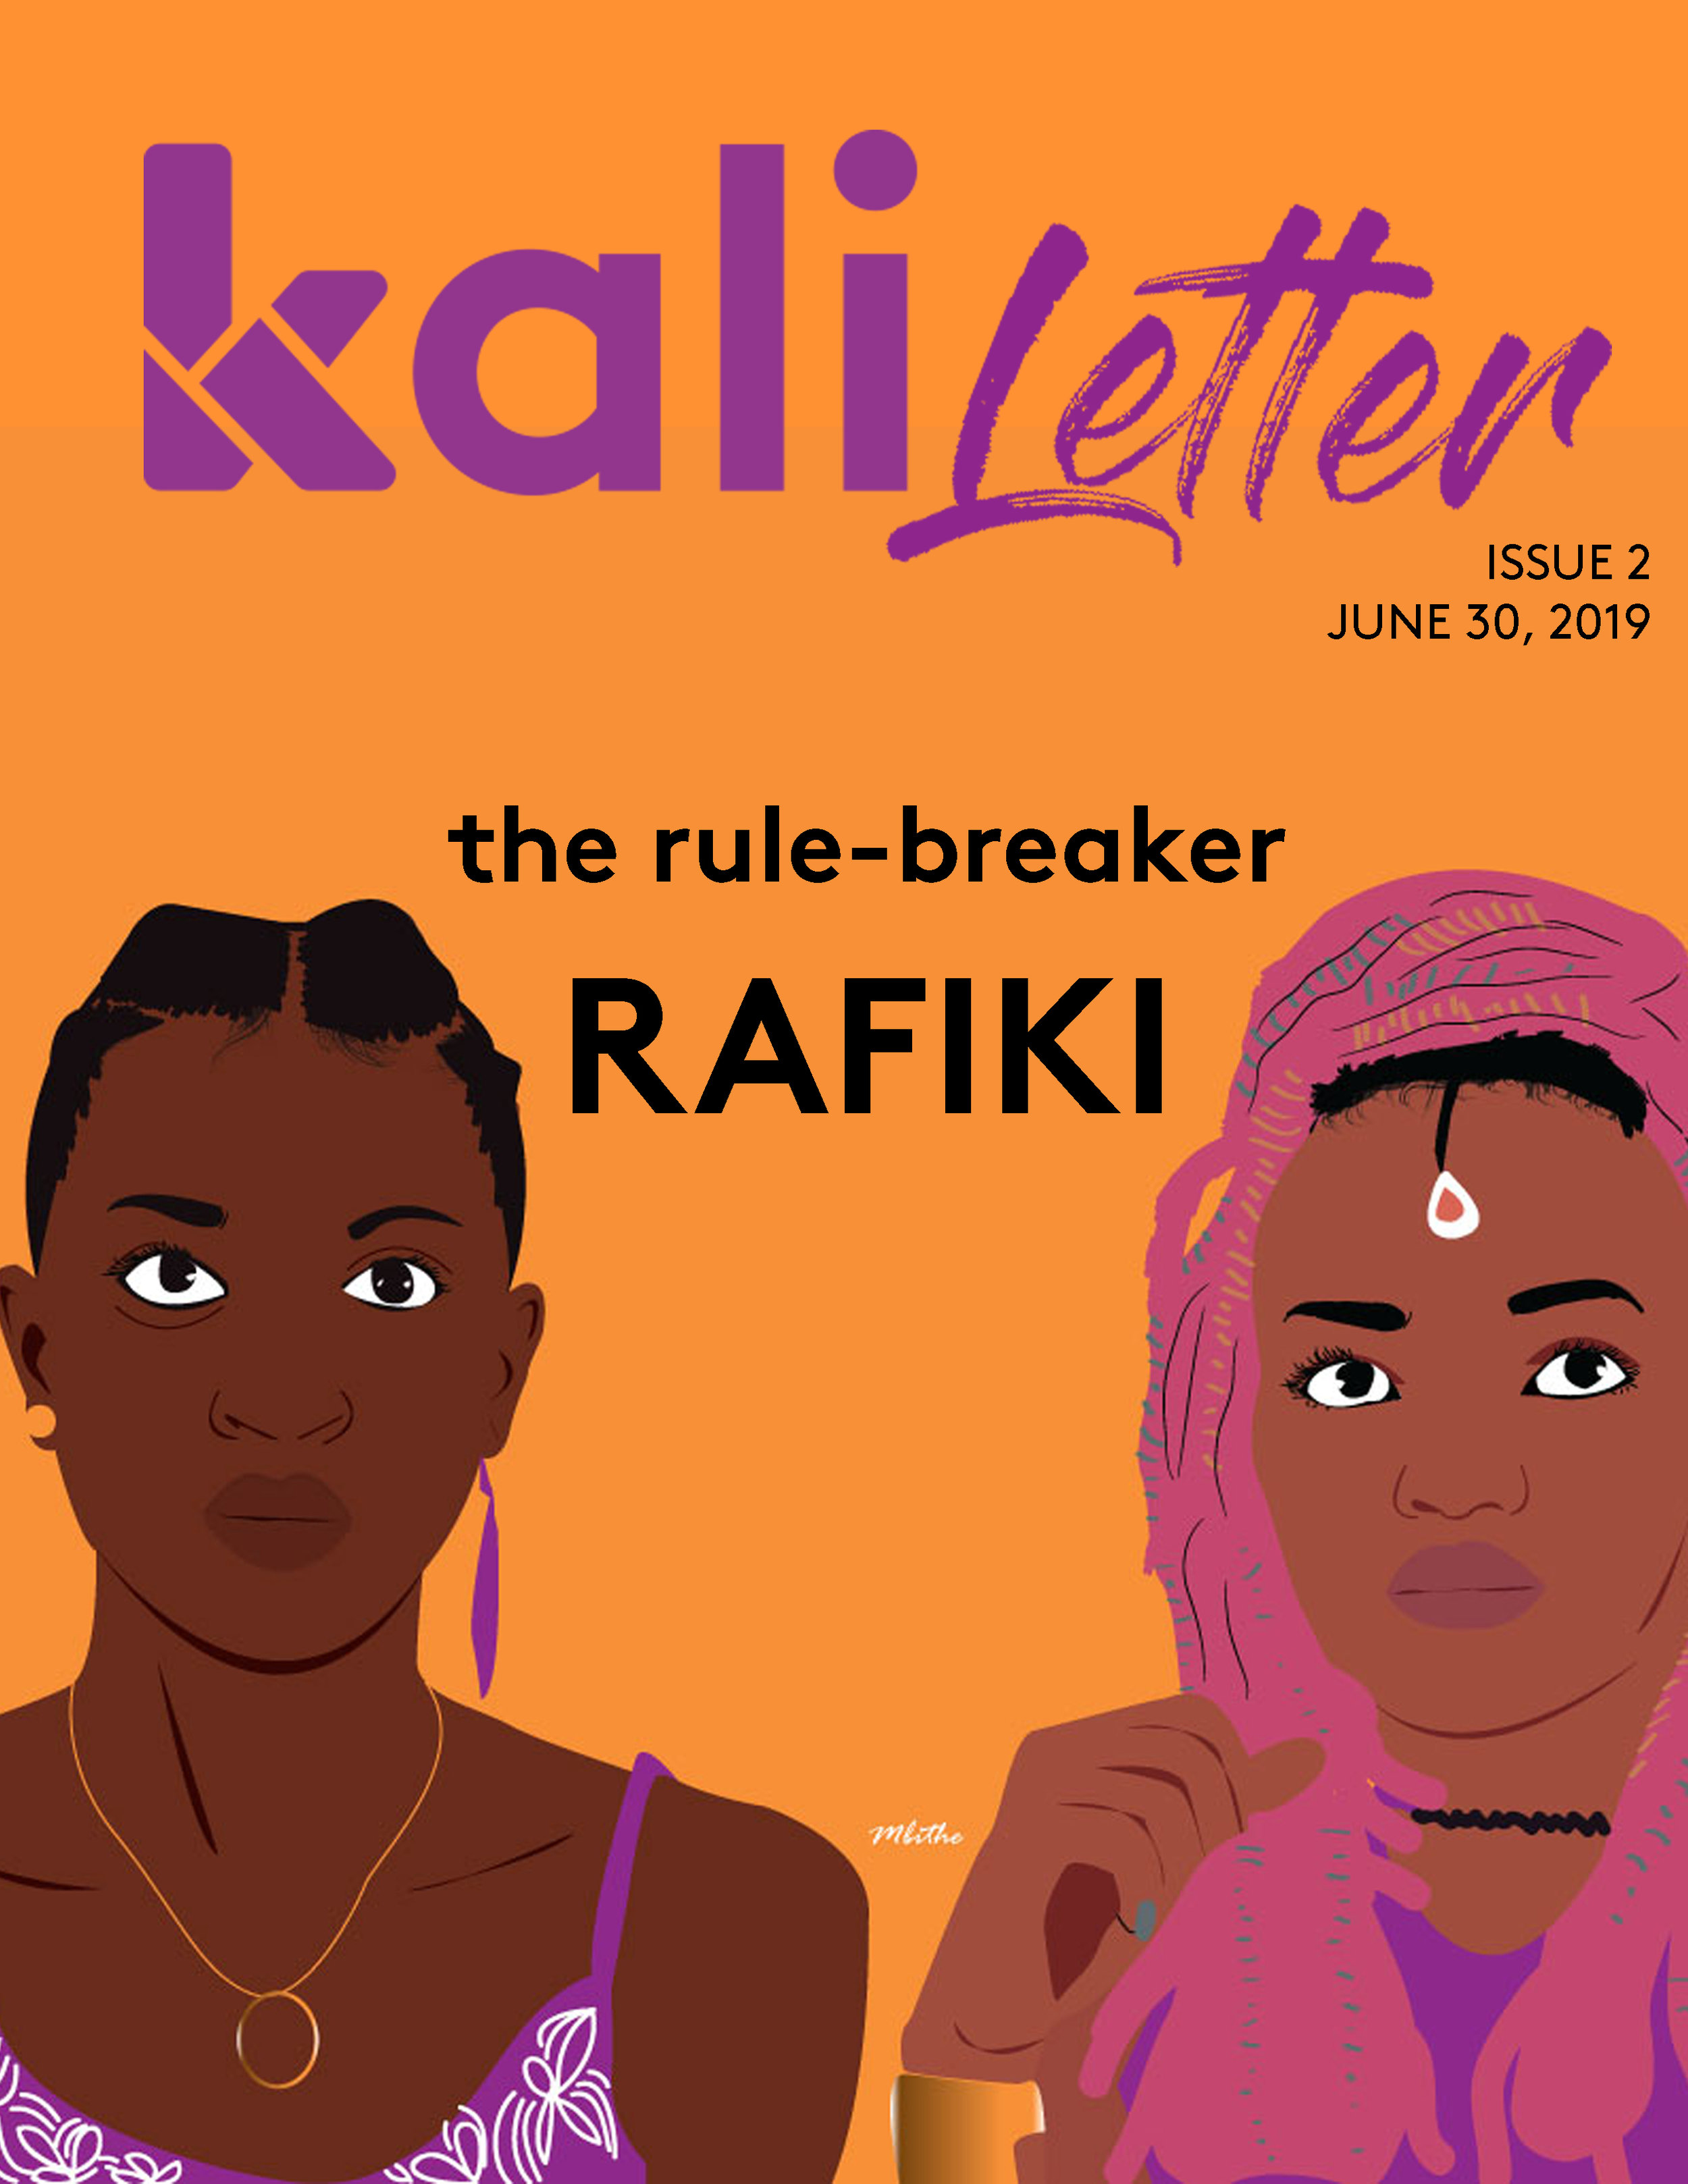 'RAFIKI: THE RULE-BREAKER'     Issue #:  2  Release Date:   June 30, 2019    The release of the film Rafiki last year — and its subsequent ban — has been a pulse check of how Kenya views its Queer population, as well as the strength of the Constitution's freedom of expression clause. But for director Wanuri Kahiu, the journey has been made up of immense highs and lows. Here is her oral storytelling of that process.